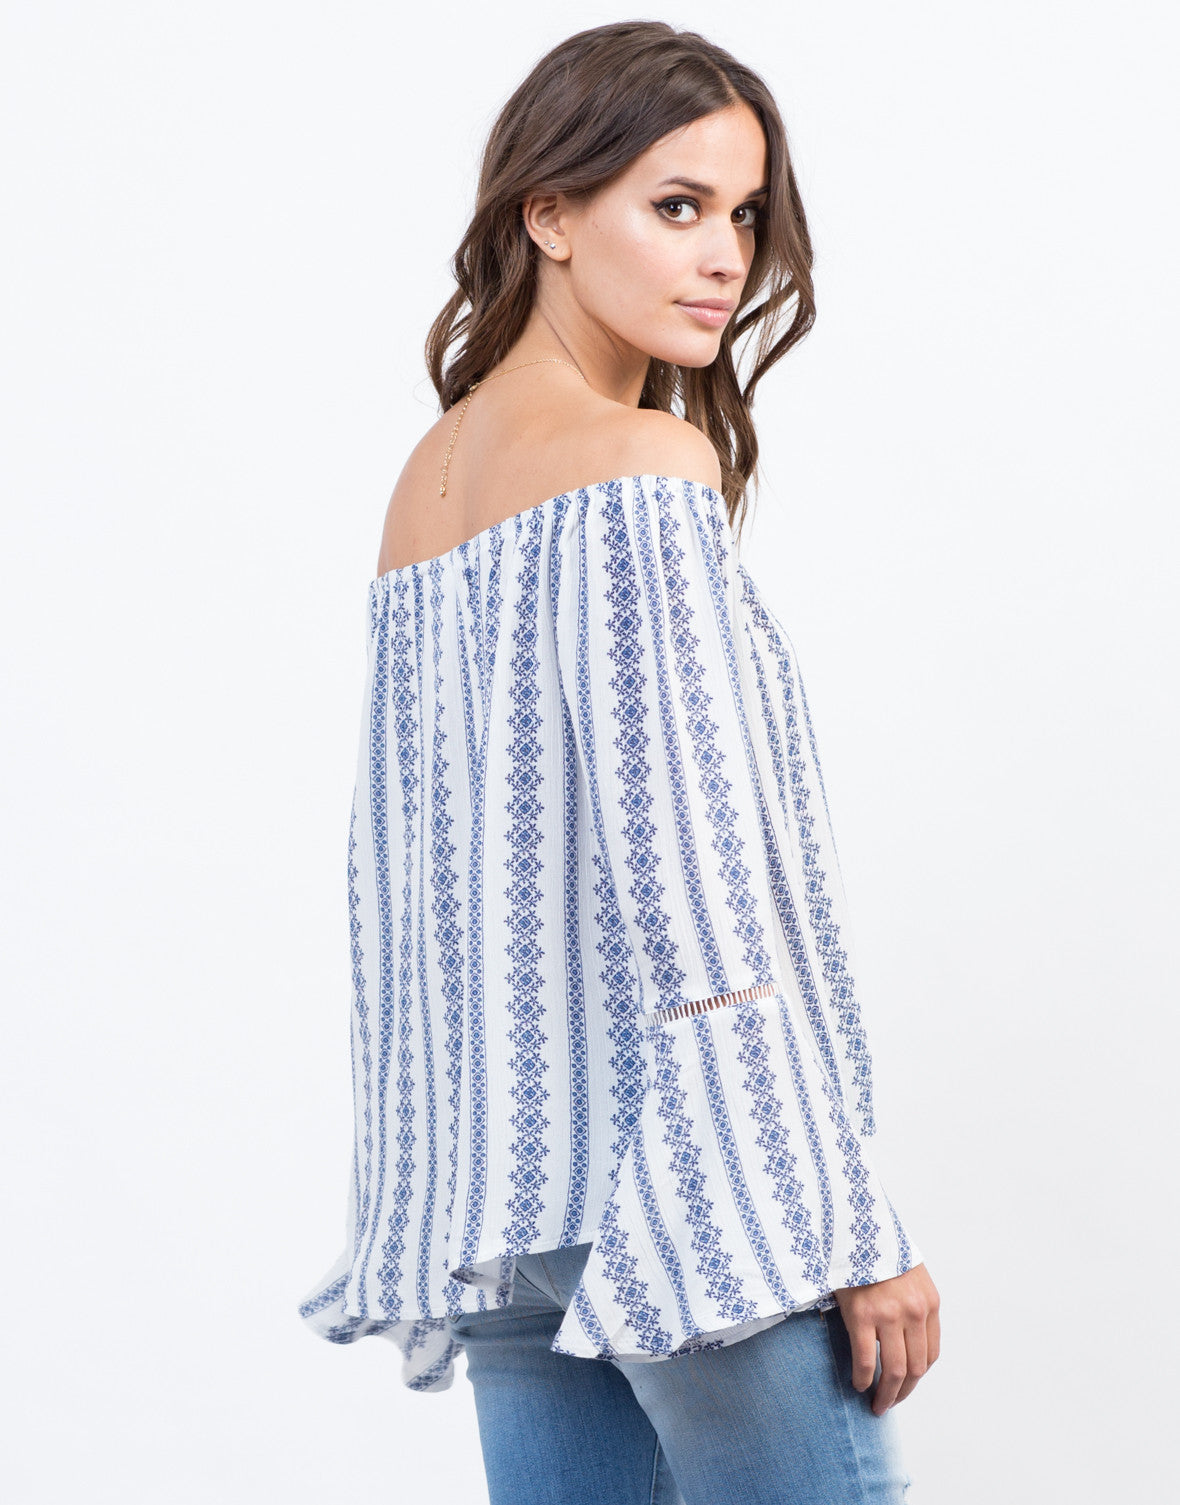 Back View of Boho Bell Sleeve Top